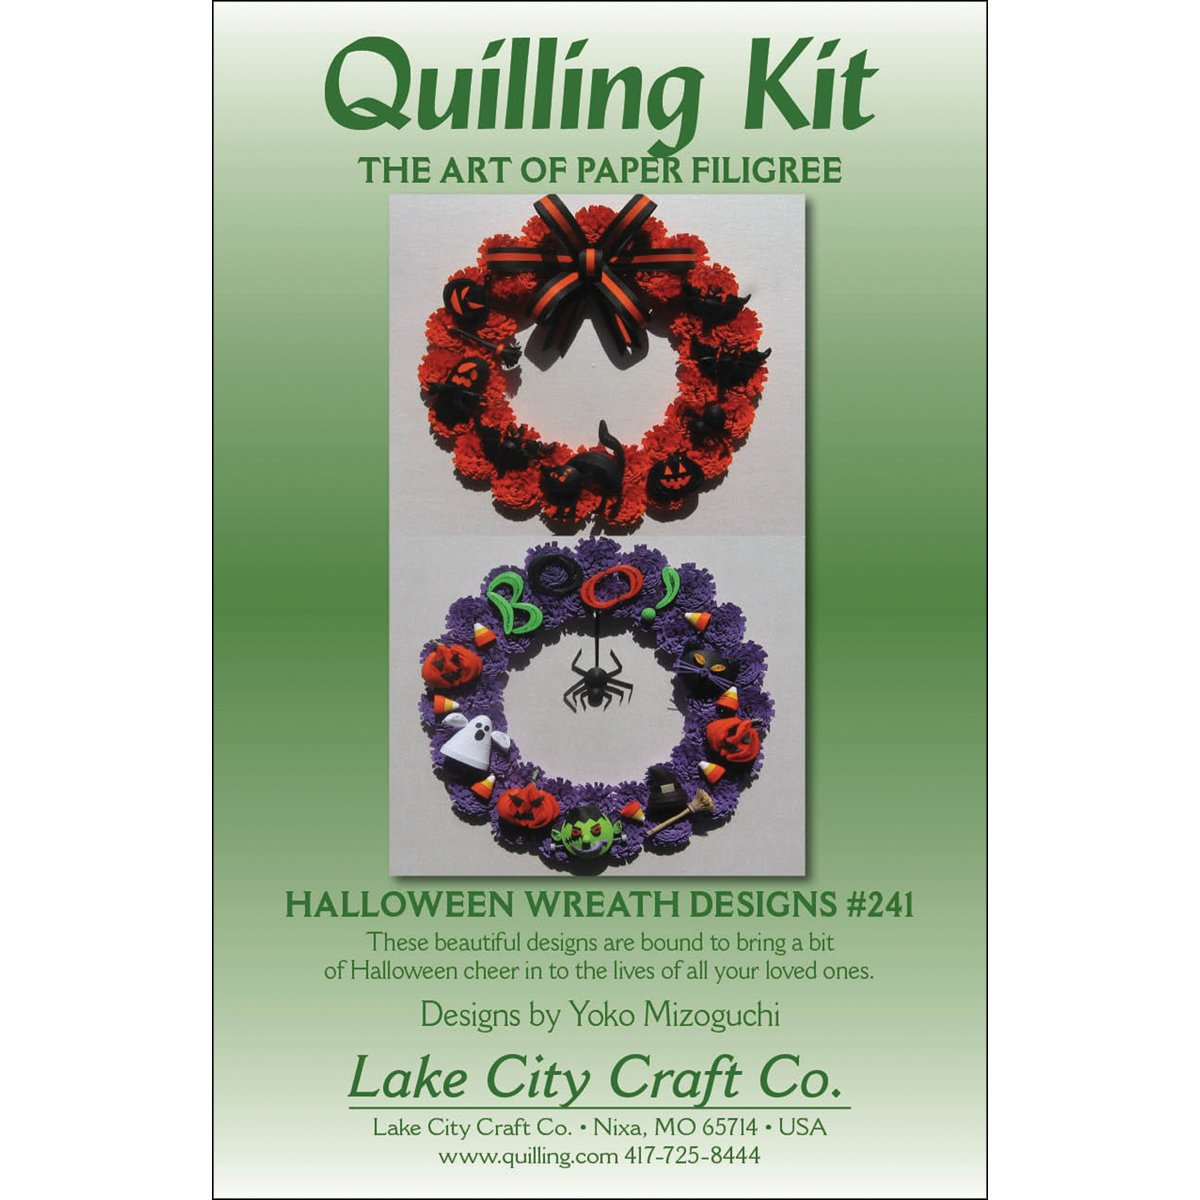 LAKE CITY CRAFT Quilling Kit, Halloween Wreaths Q241